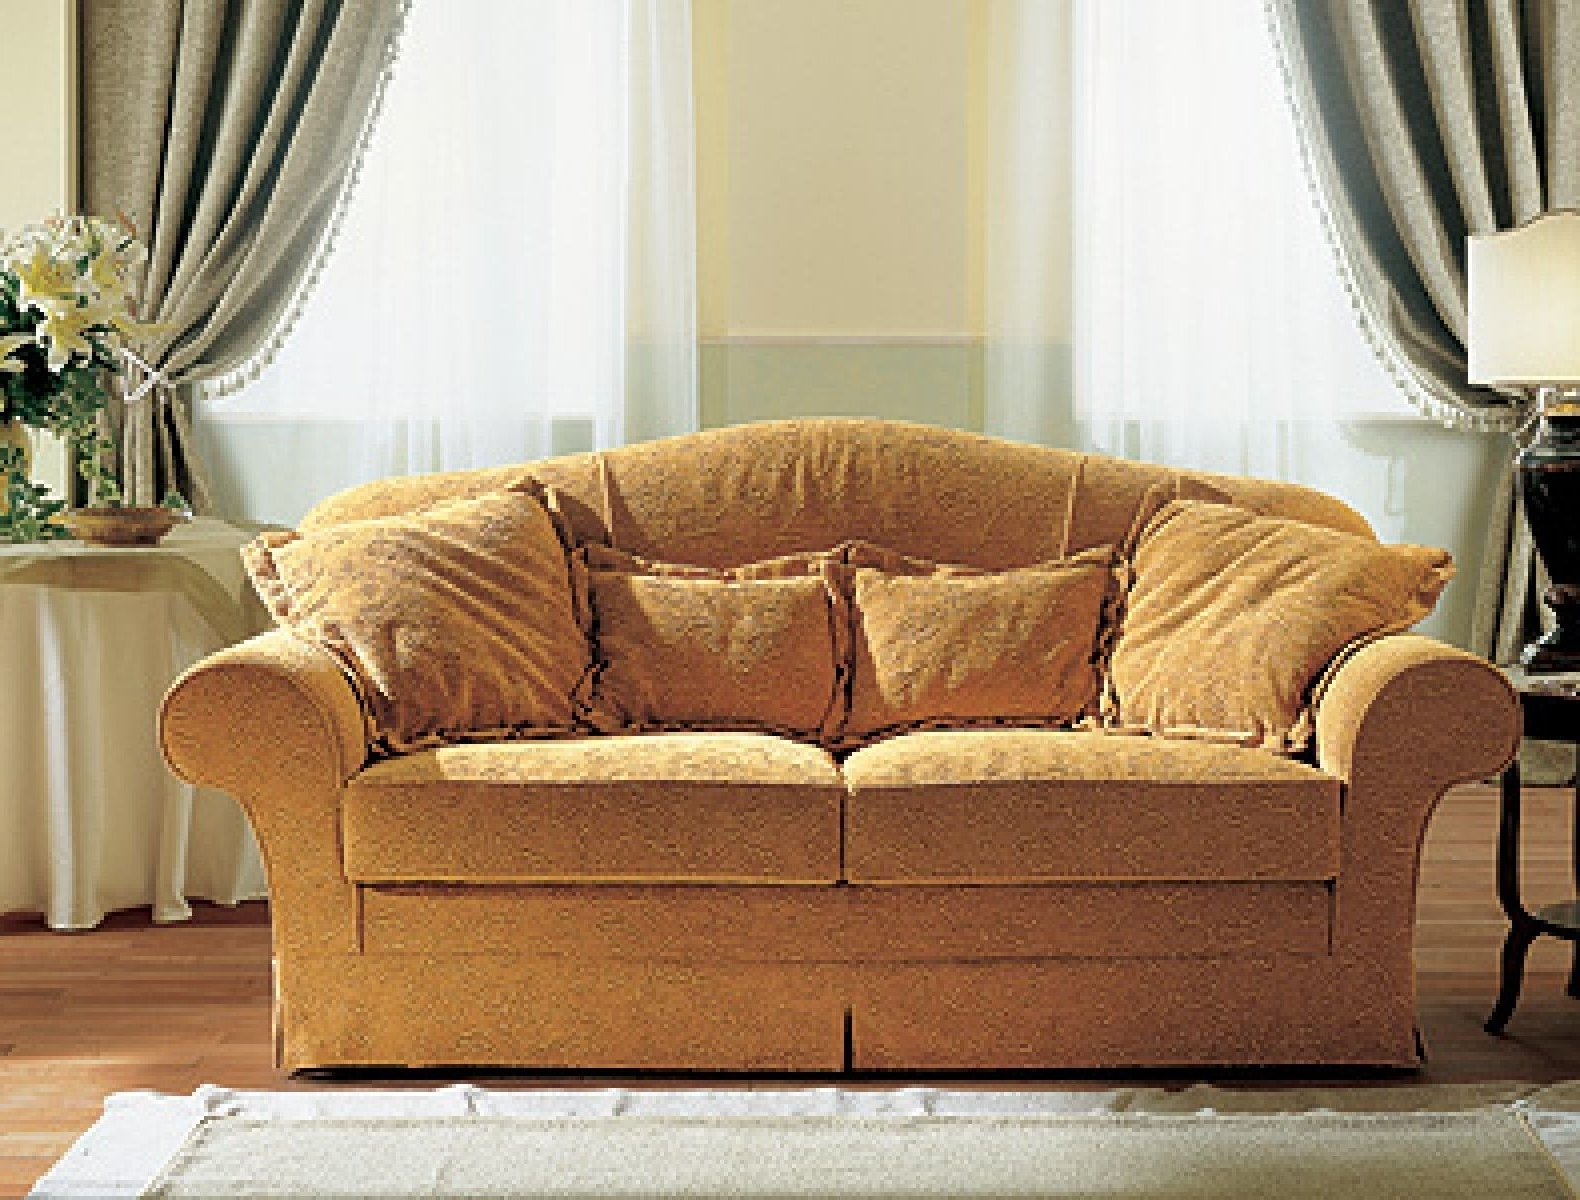 Well Known Elegant Traditional Sofas 70 For Your Office Sofa Ideas With With Traditional Sofas (View 18 of 20)